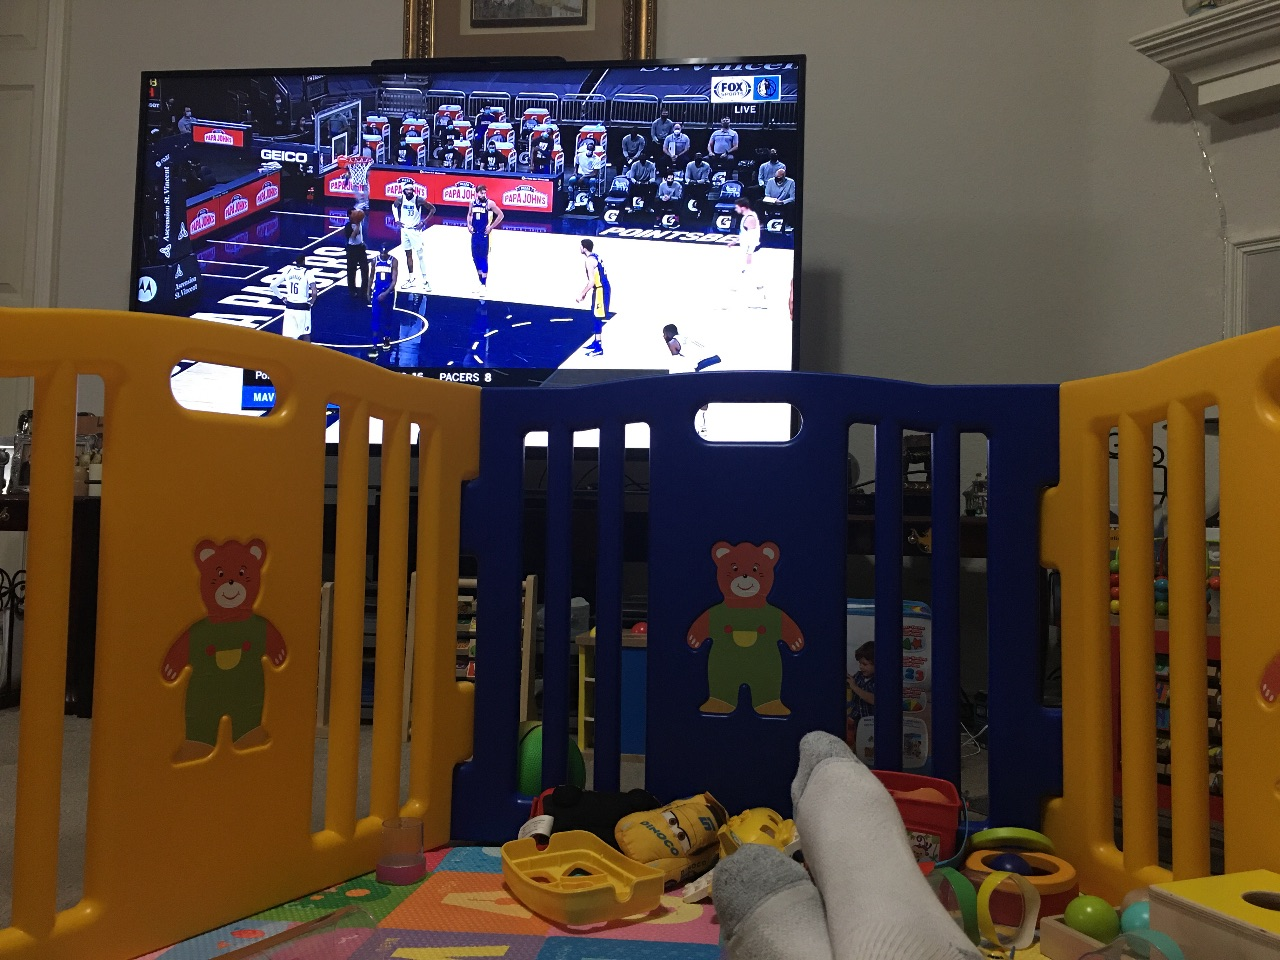 Watching a basketball game from inside the play pen.